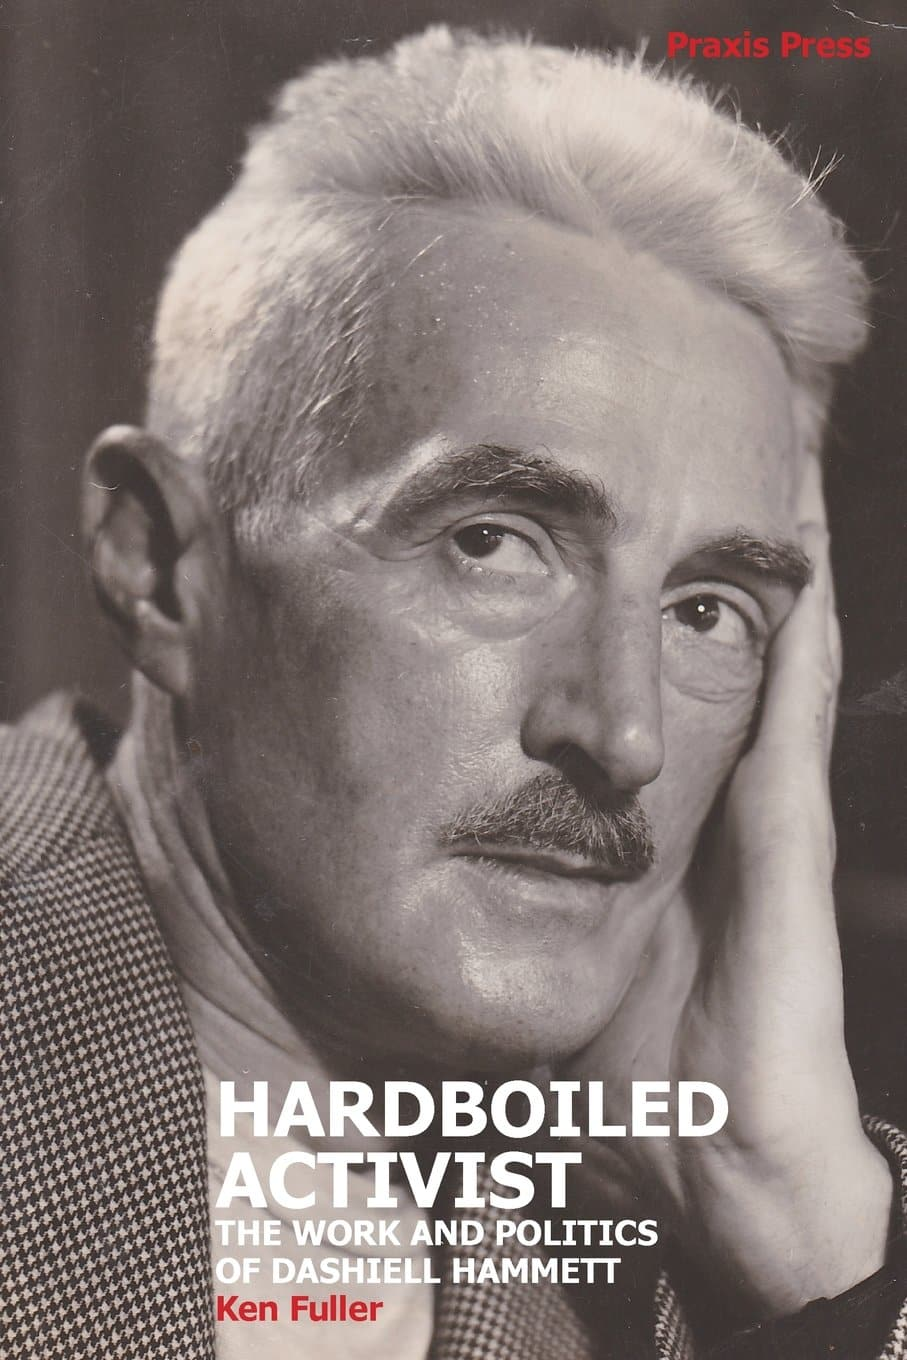 Monthly Review   The Radicalization of Dashiell Hammett